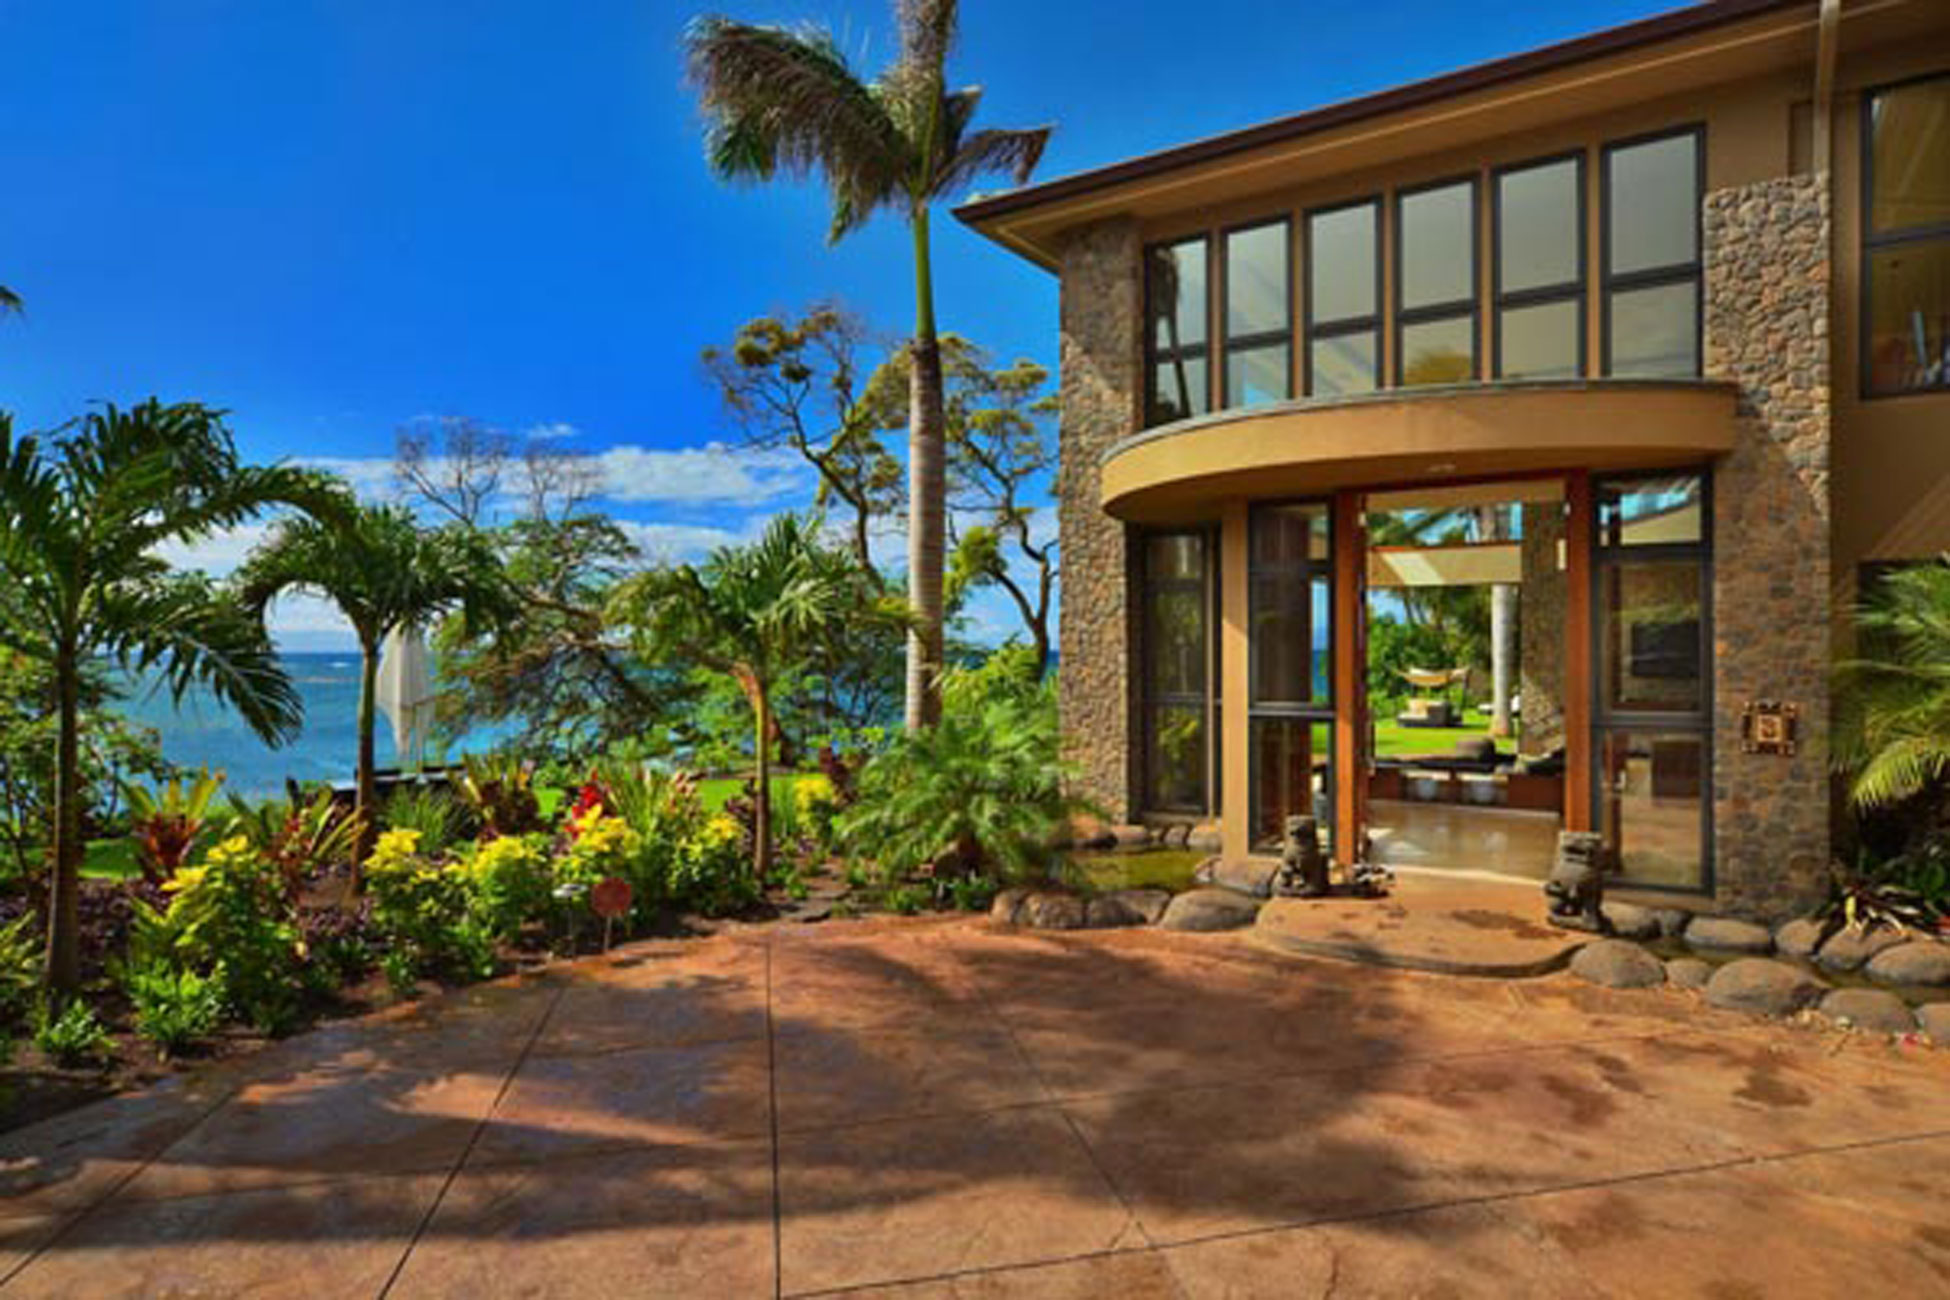 Luxurious Villa Design in Hawaii with Great Landscapes - Architecture